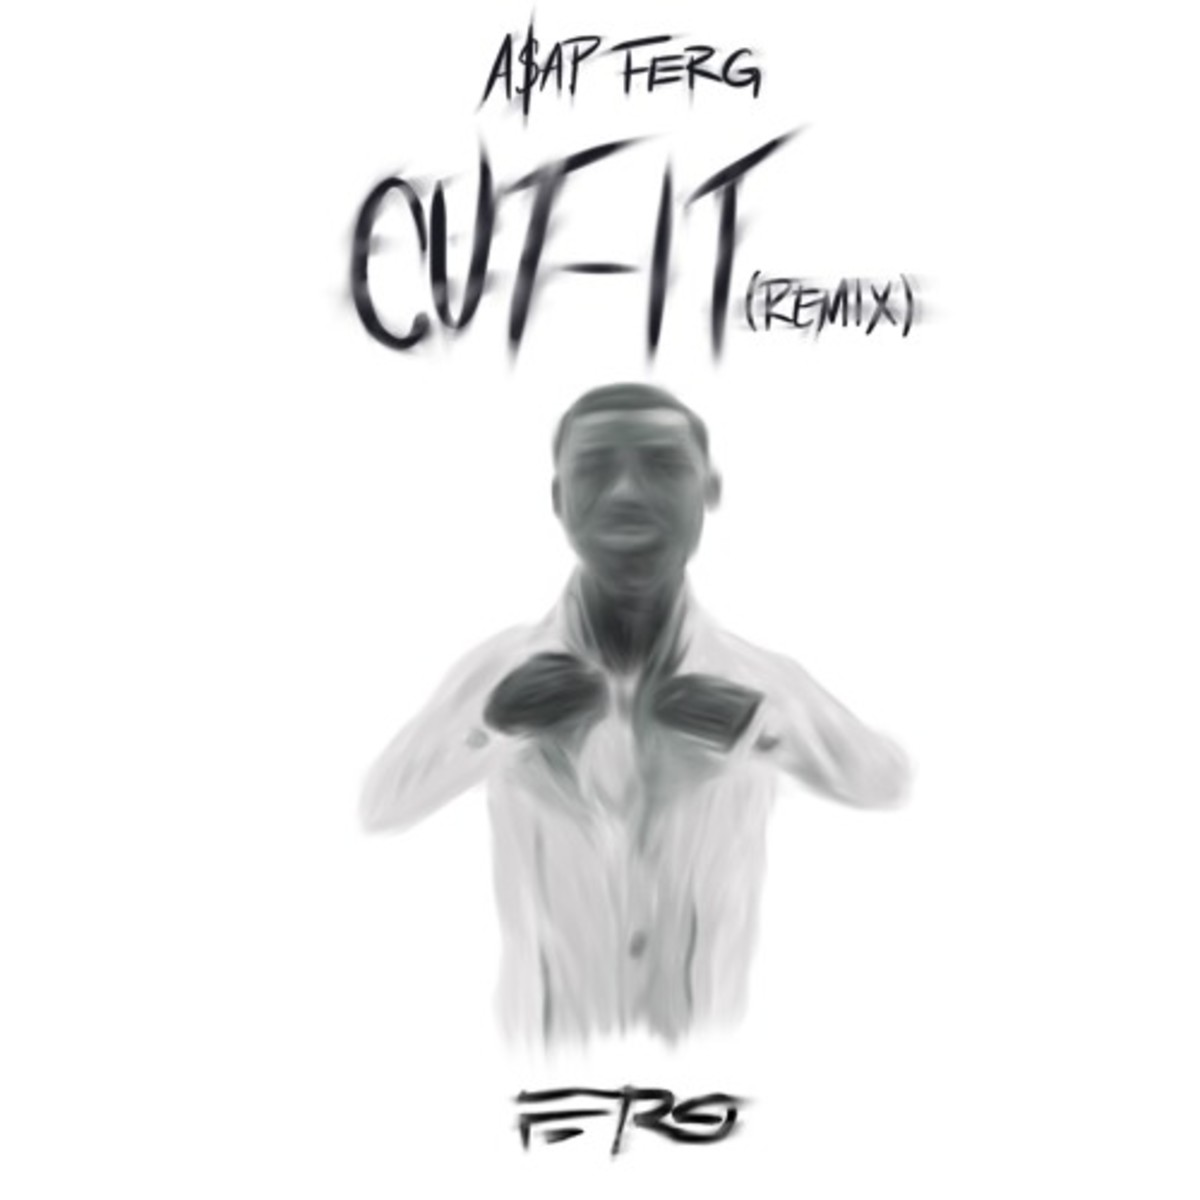 asap-ferg-cut-it-remix.jpg